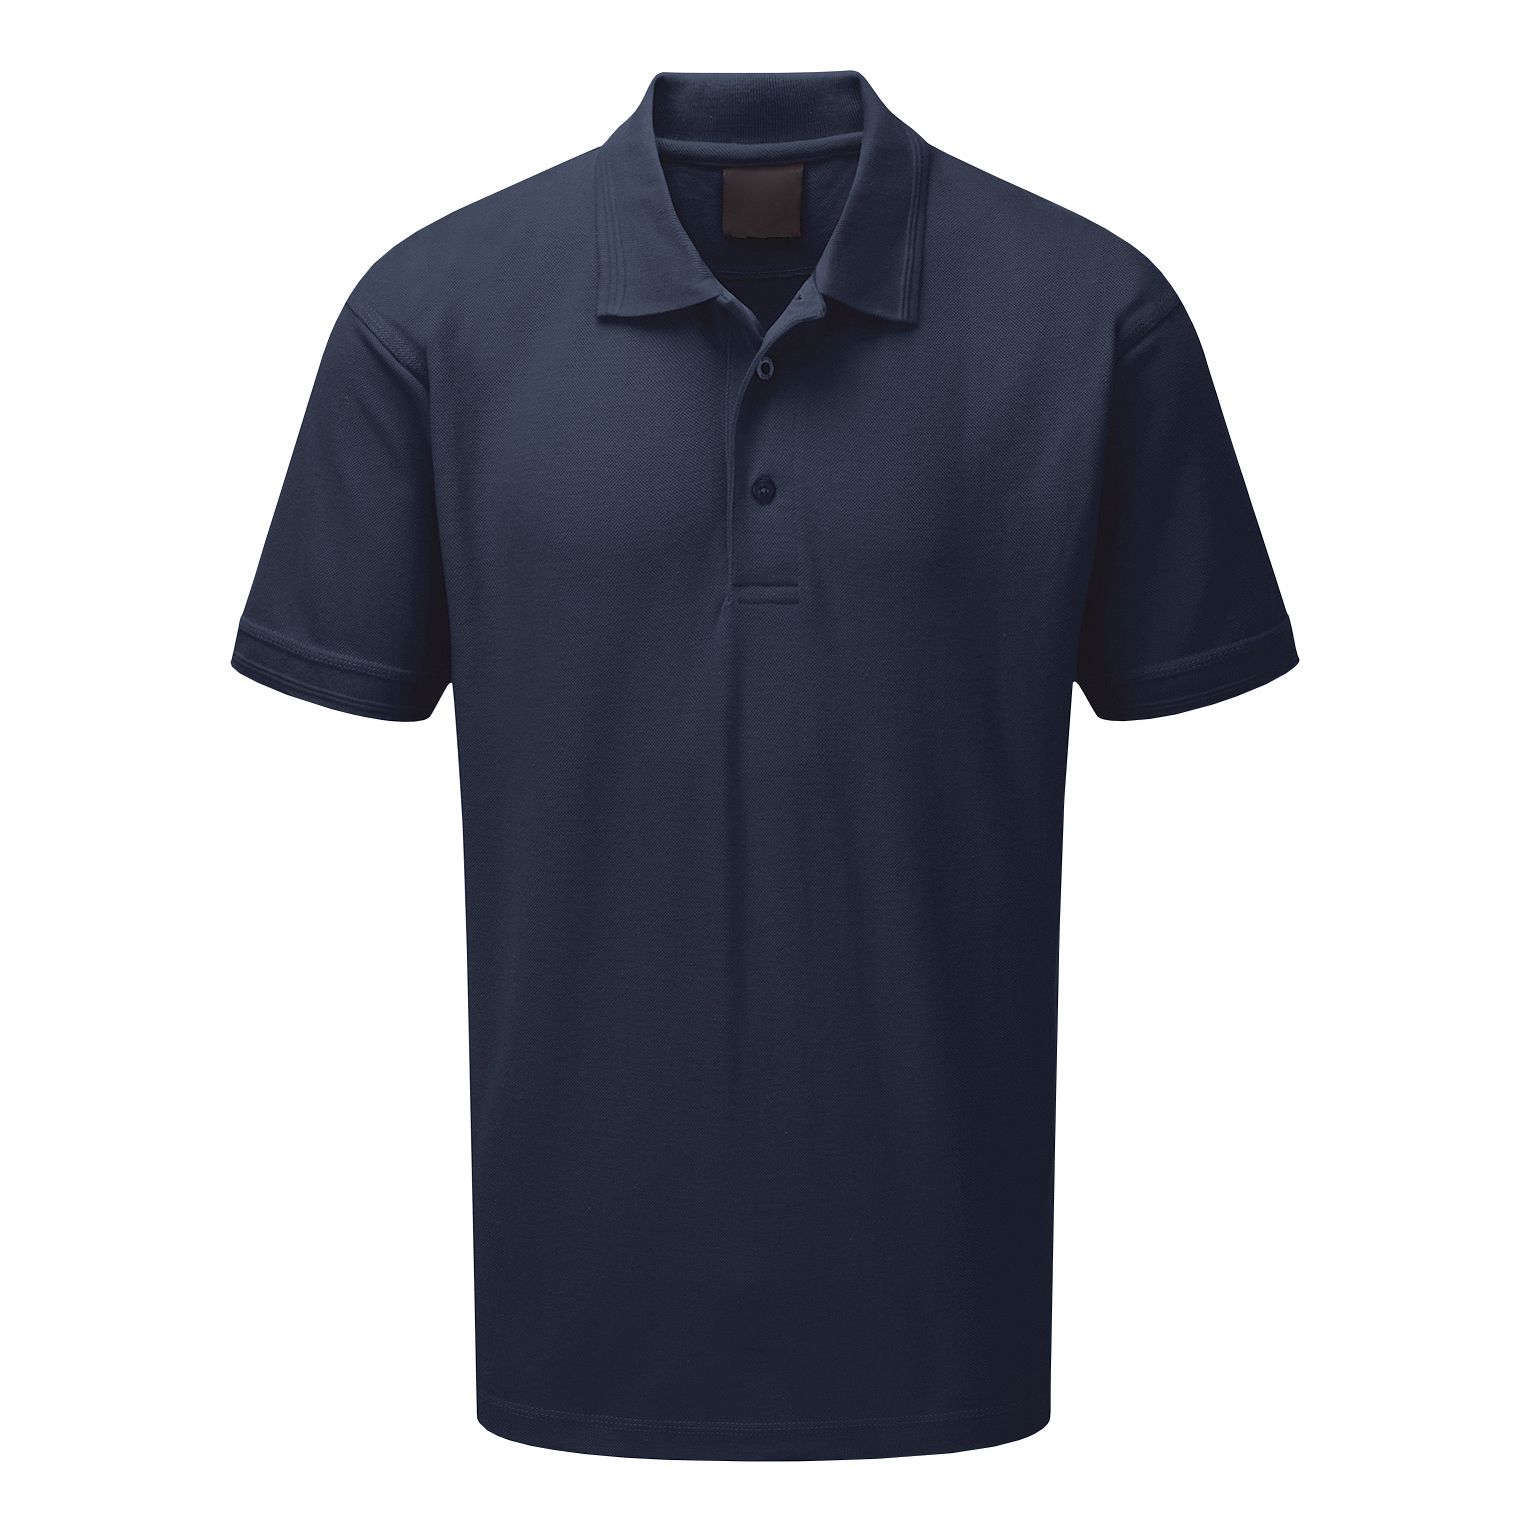 Supertouch Polo Shirt Classic Polycotton Large Navy Ref 56CN3 *Approx 3 Day Leadtime*